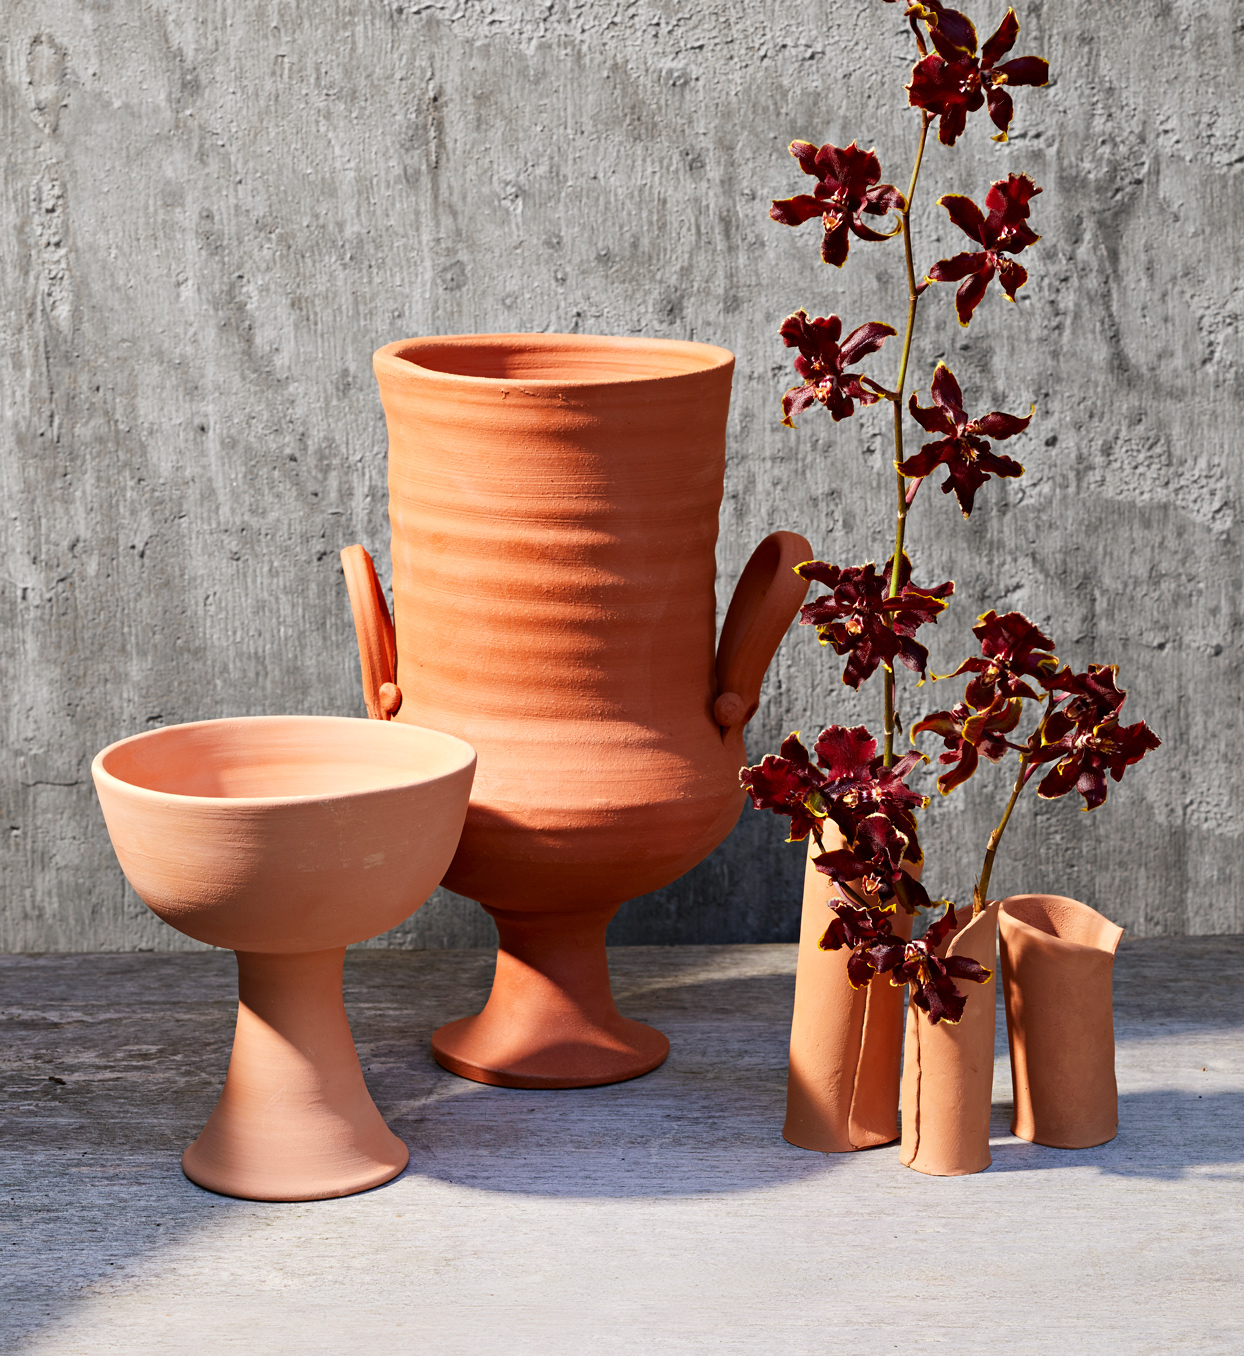 terracotta vases, planter, and urn for plants and flowers